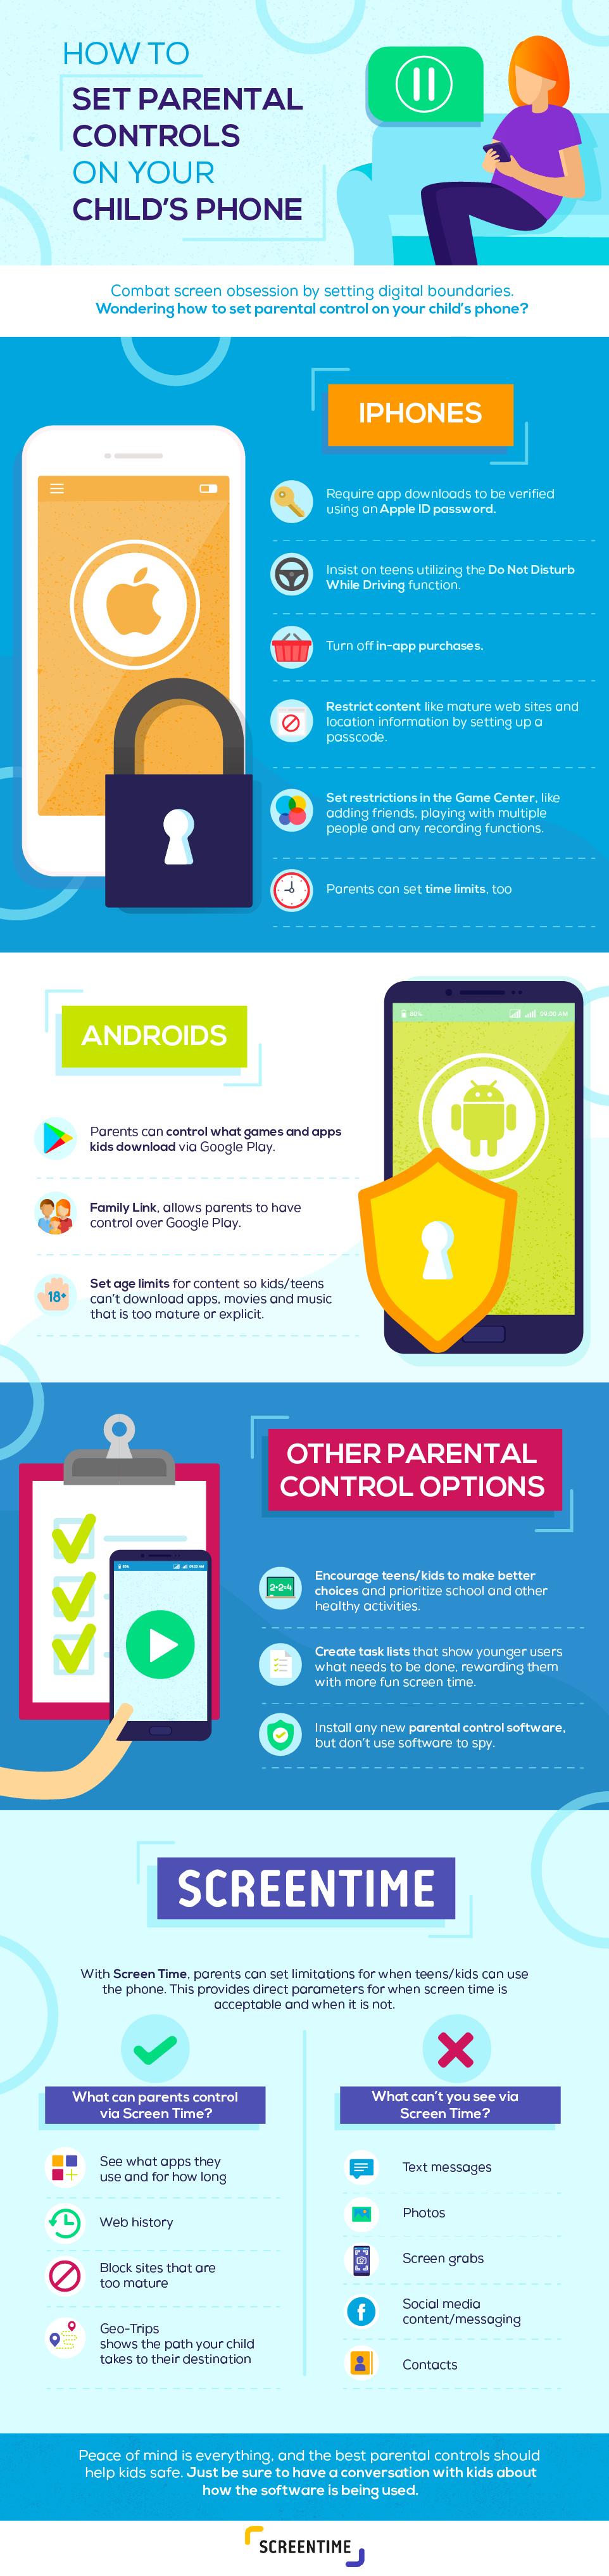 How to Set Parental Controls on Your Child's Phone